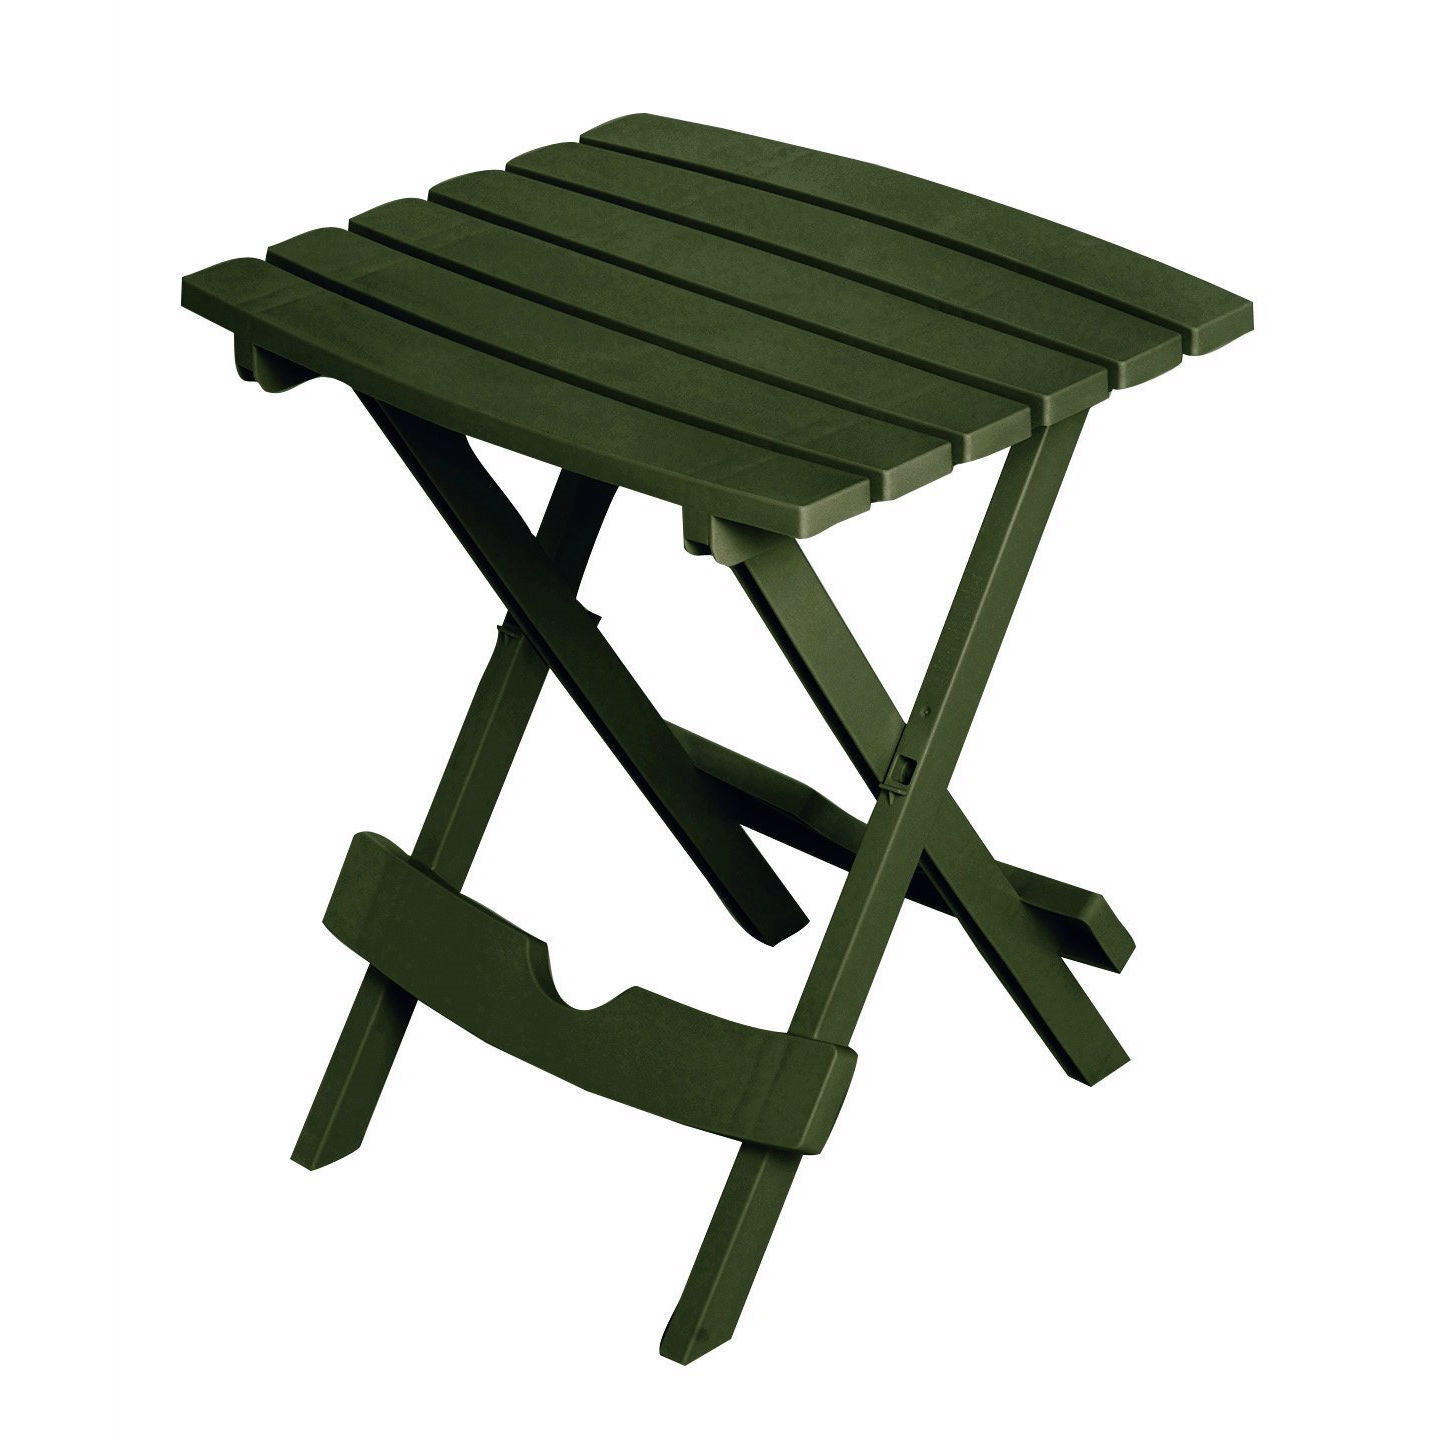 folding outdoor side table earth brown durable plastic resin emerald green drummer stool with backrest corner accent furniture tall skinny console round dining and chairs west elm